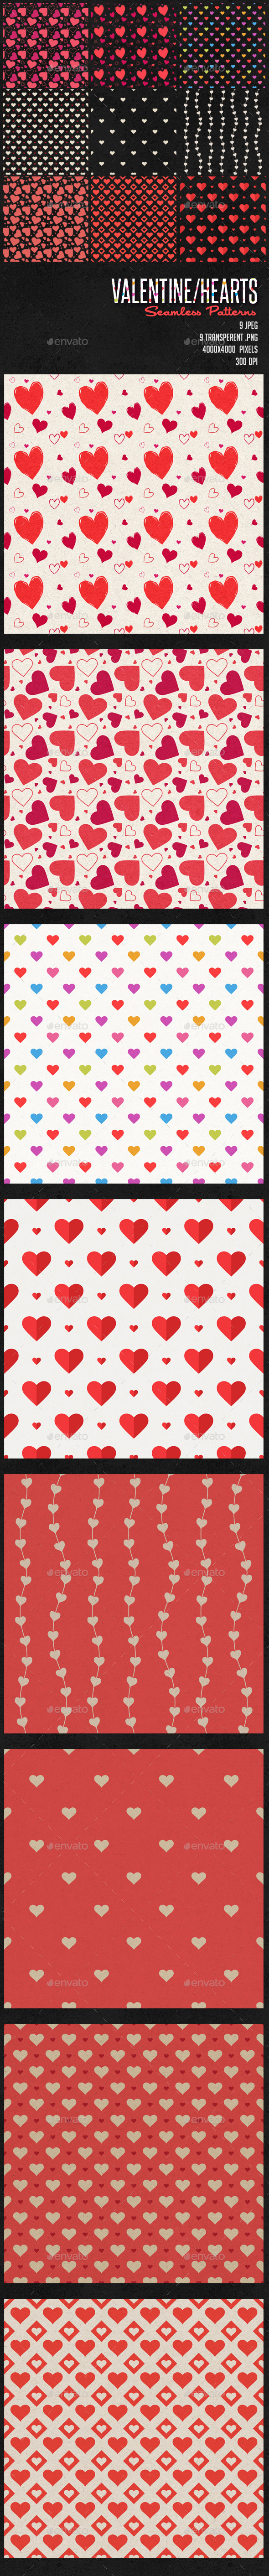 GraphicRiver Valentines Heart Patterns 9945690